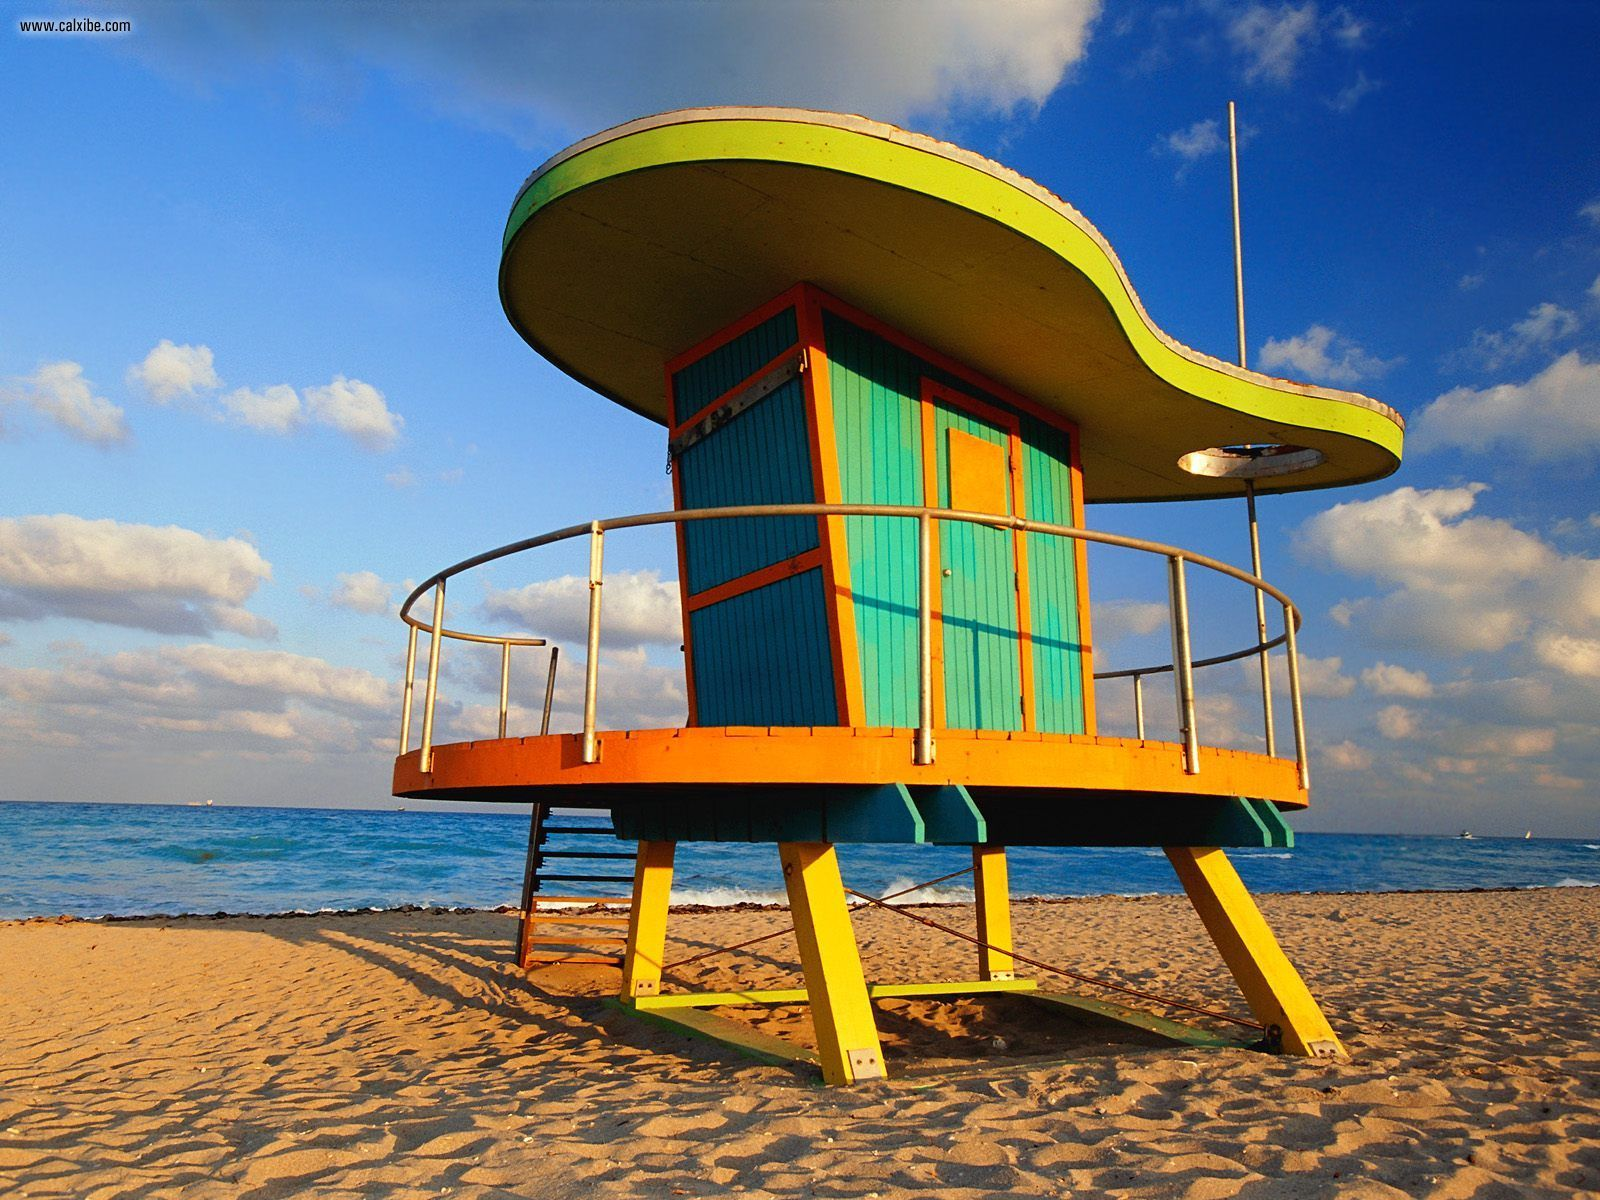 There is various Southbeach Miami Wallpaper background which you can 1600x1200